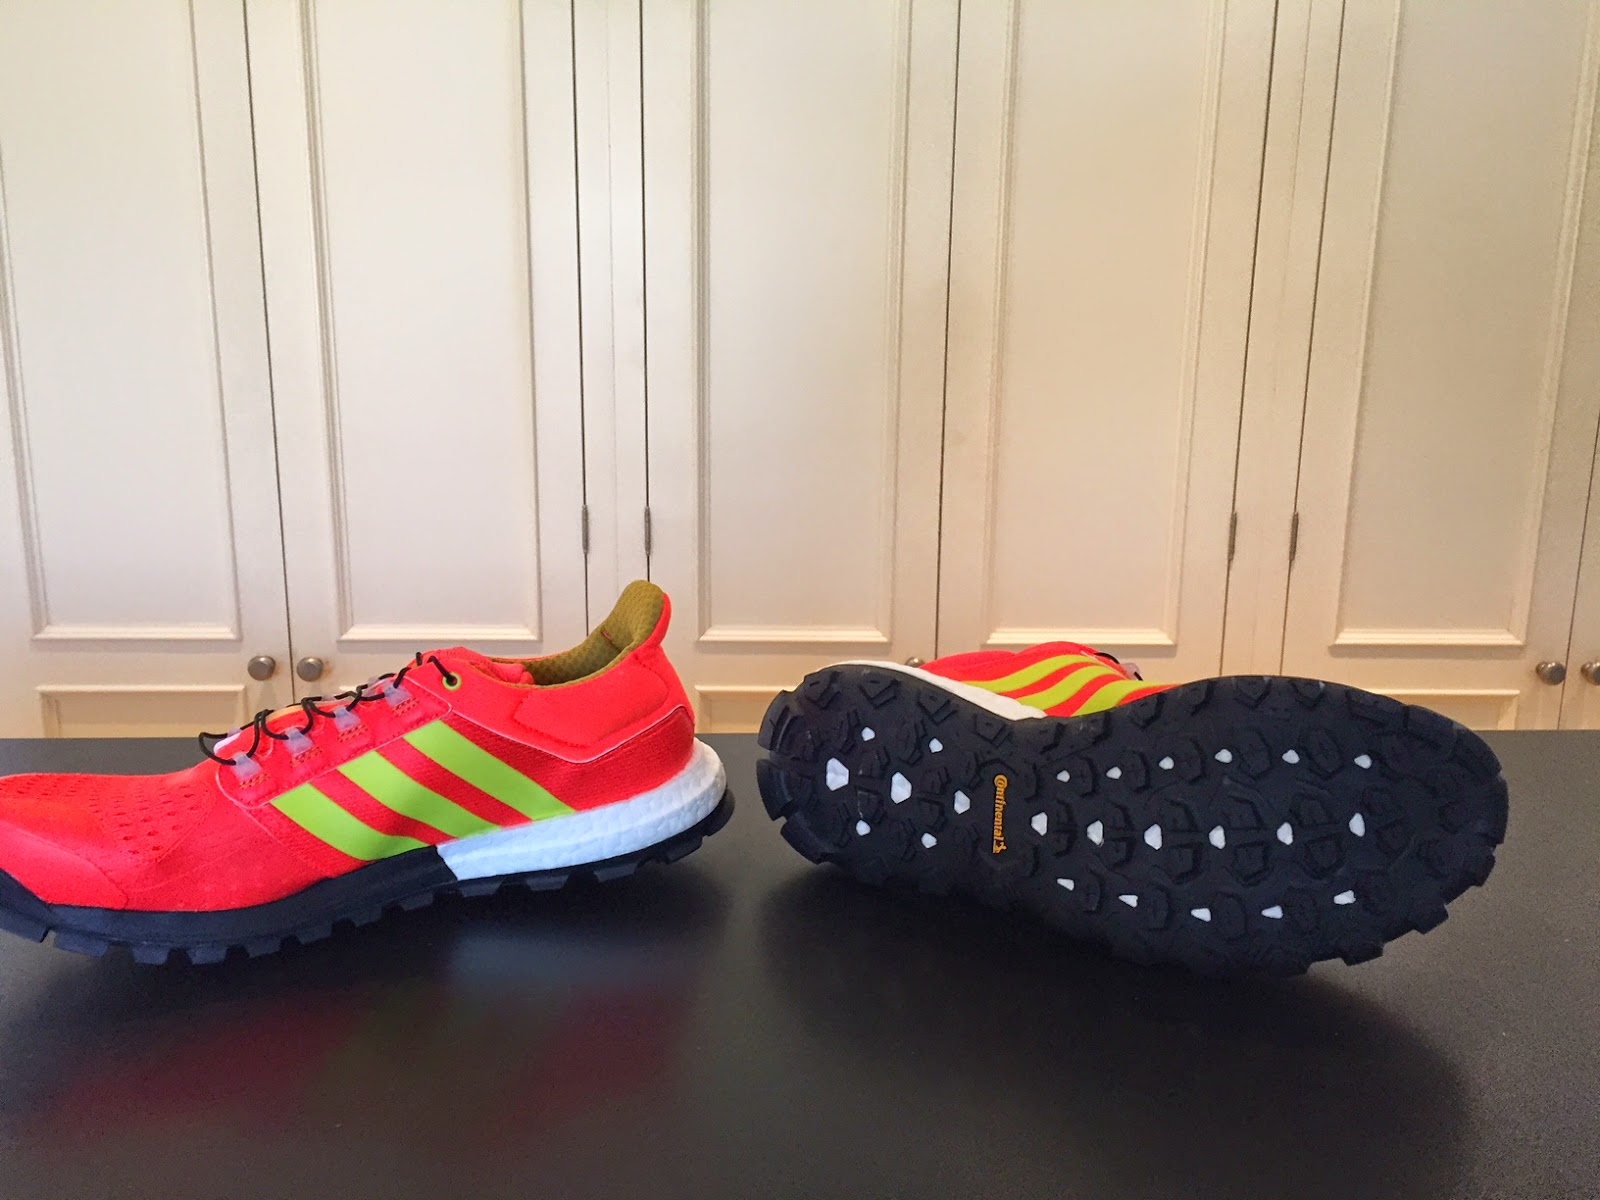 Adidas Rubber Things To Go Over Football Shoes